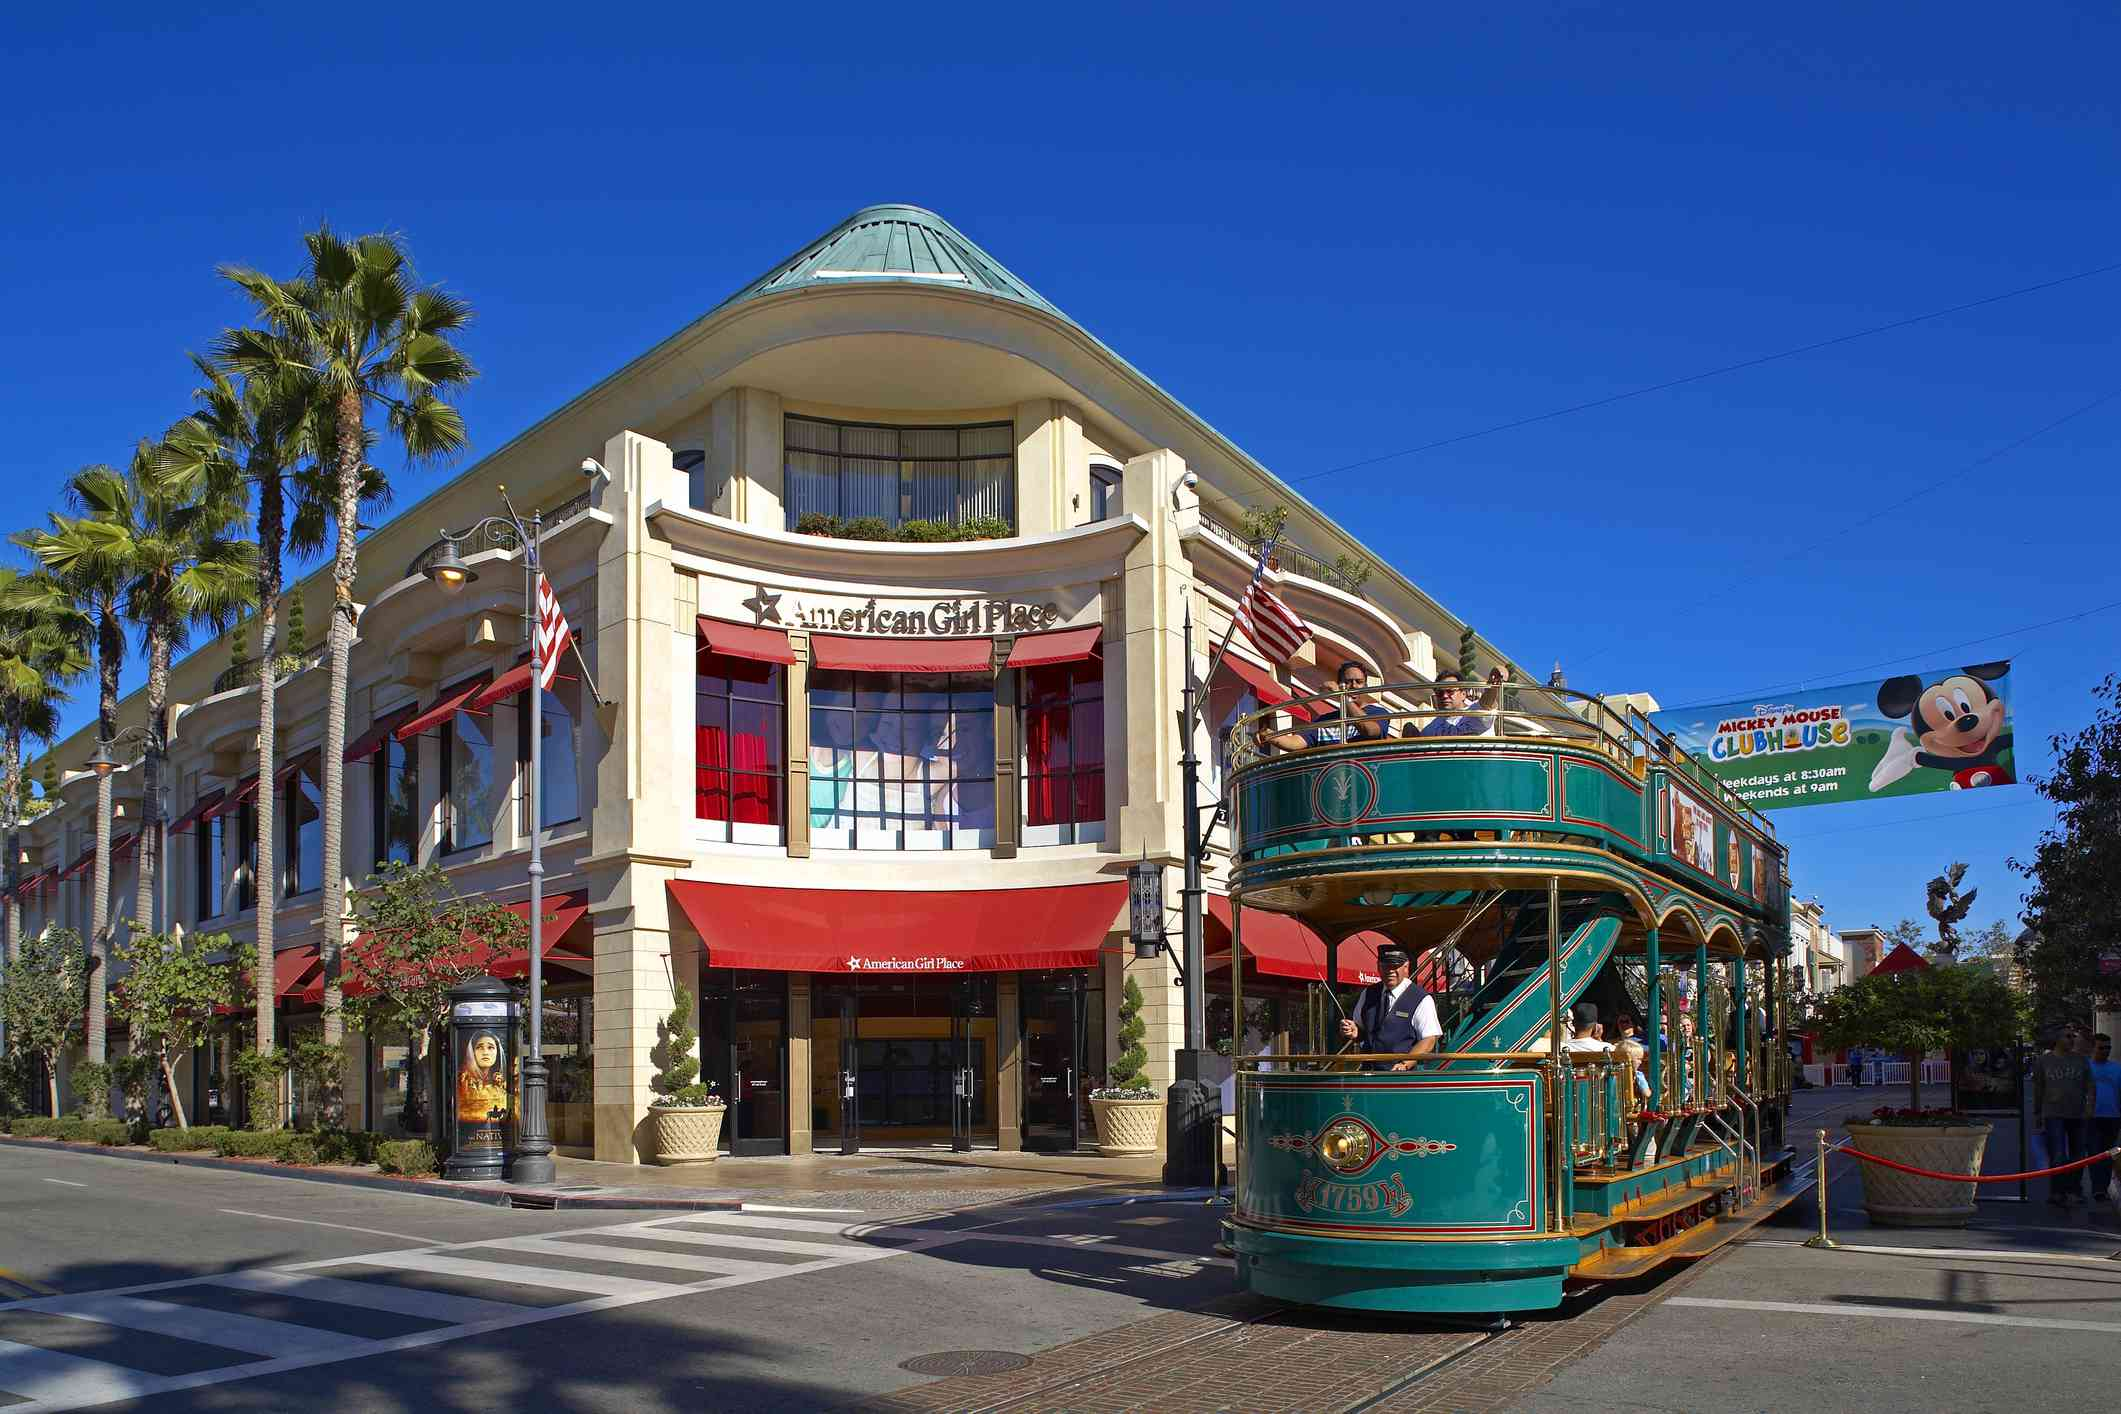 The Beverly Hills Trolley tour